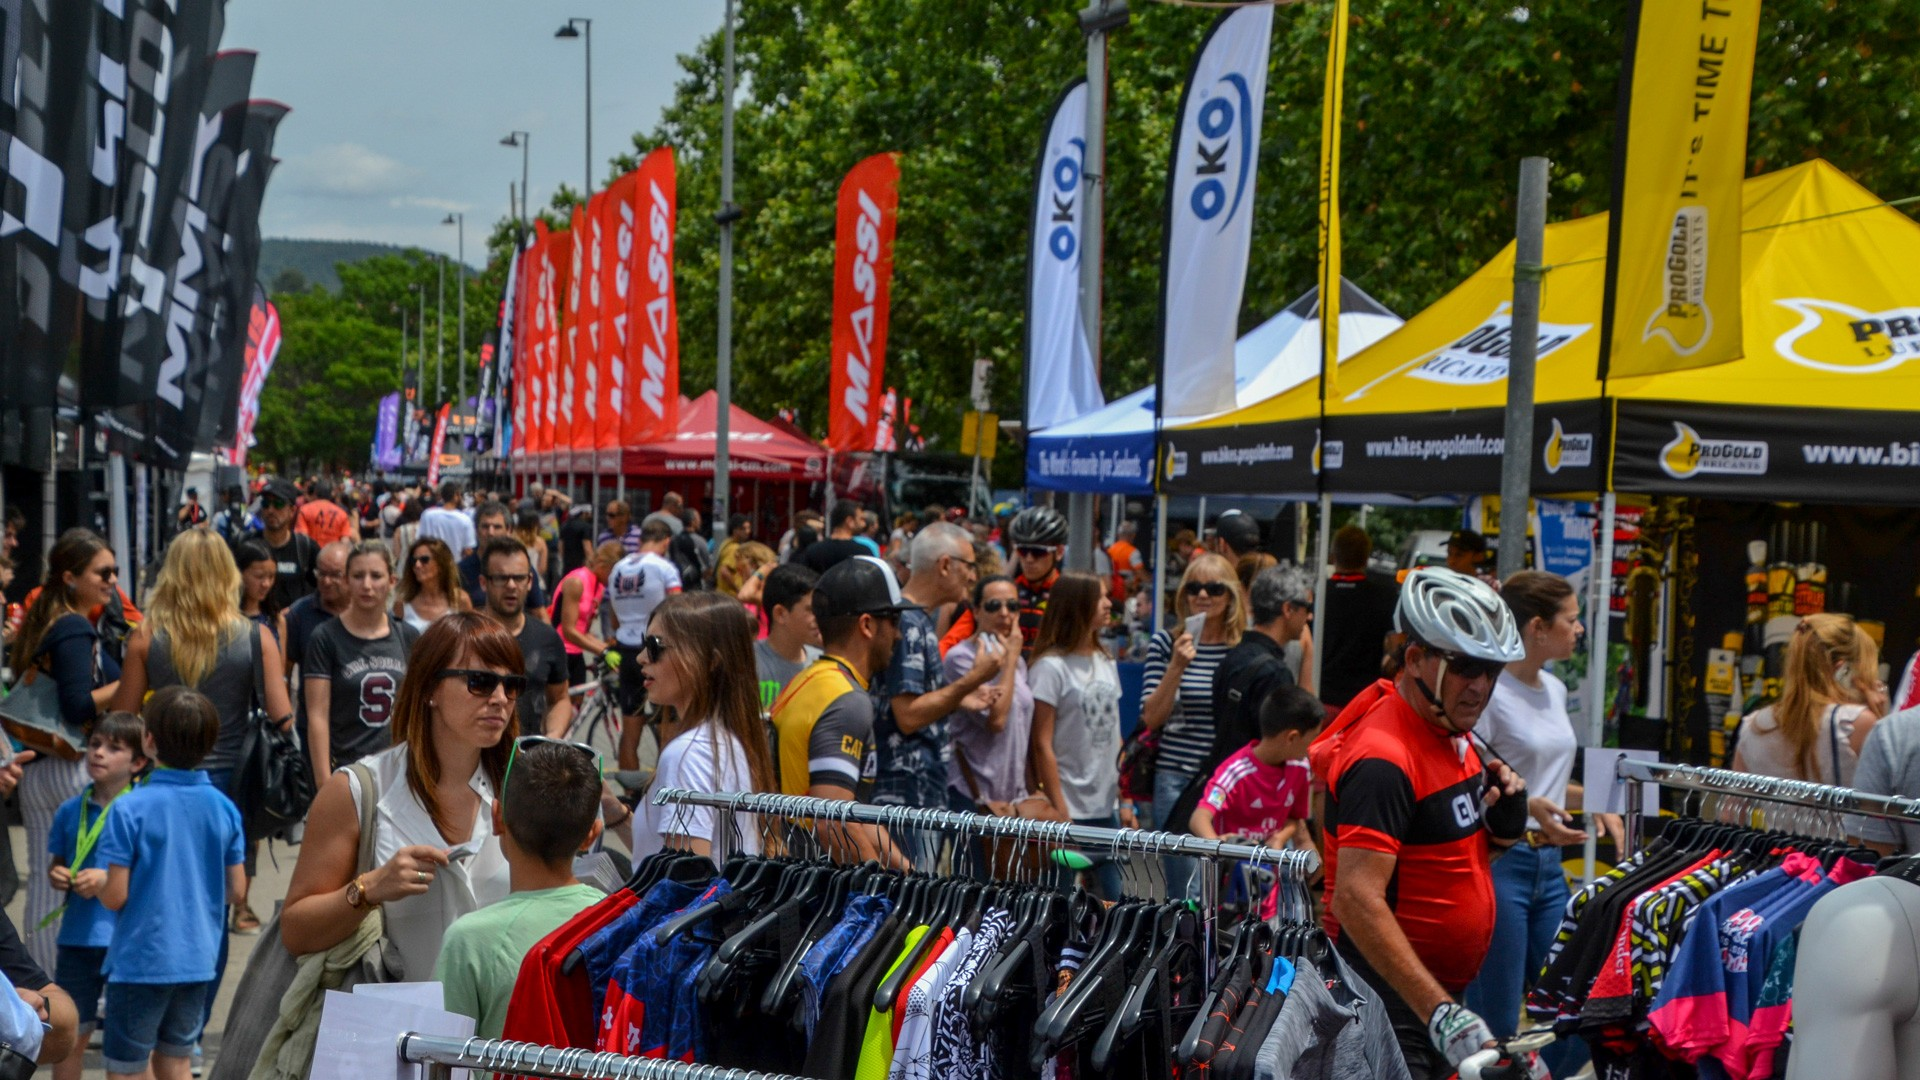 The show's huge expo area was filled with the hottest bikes and kit